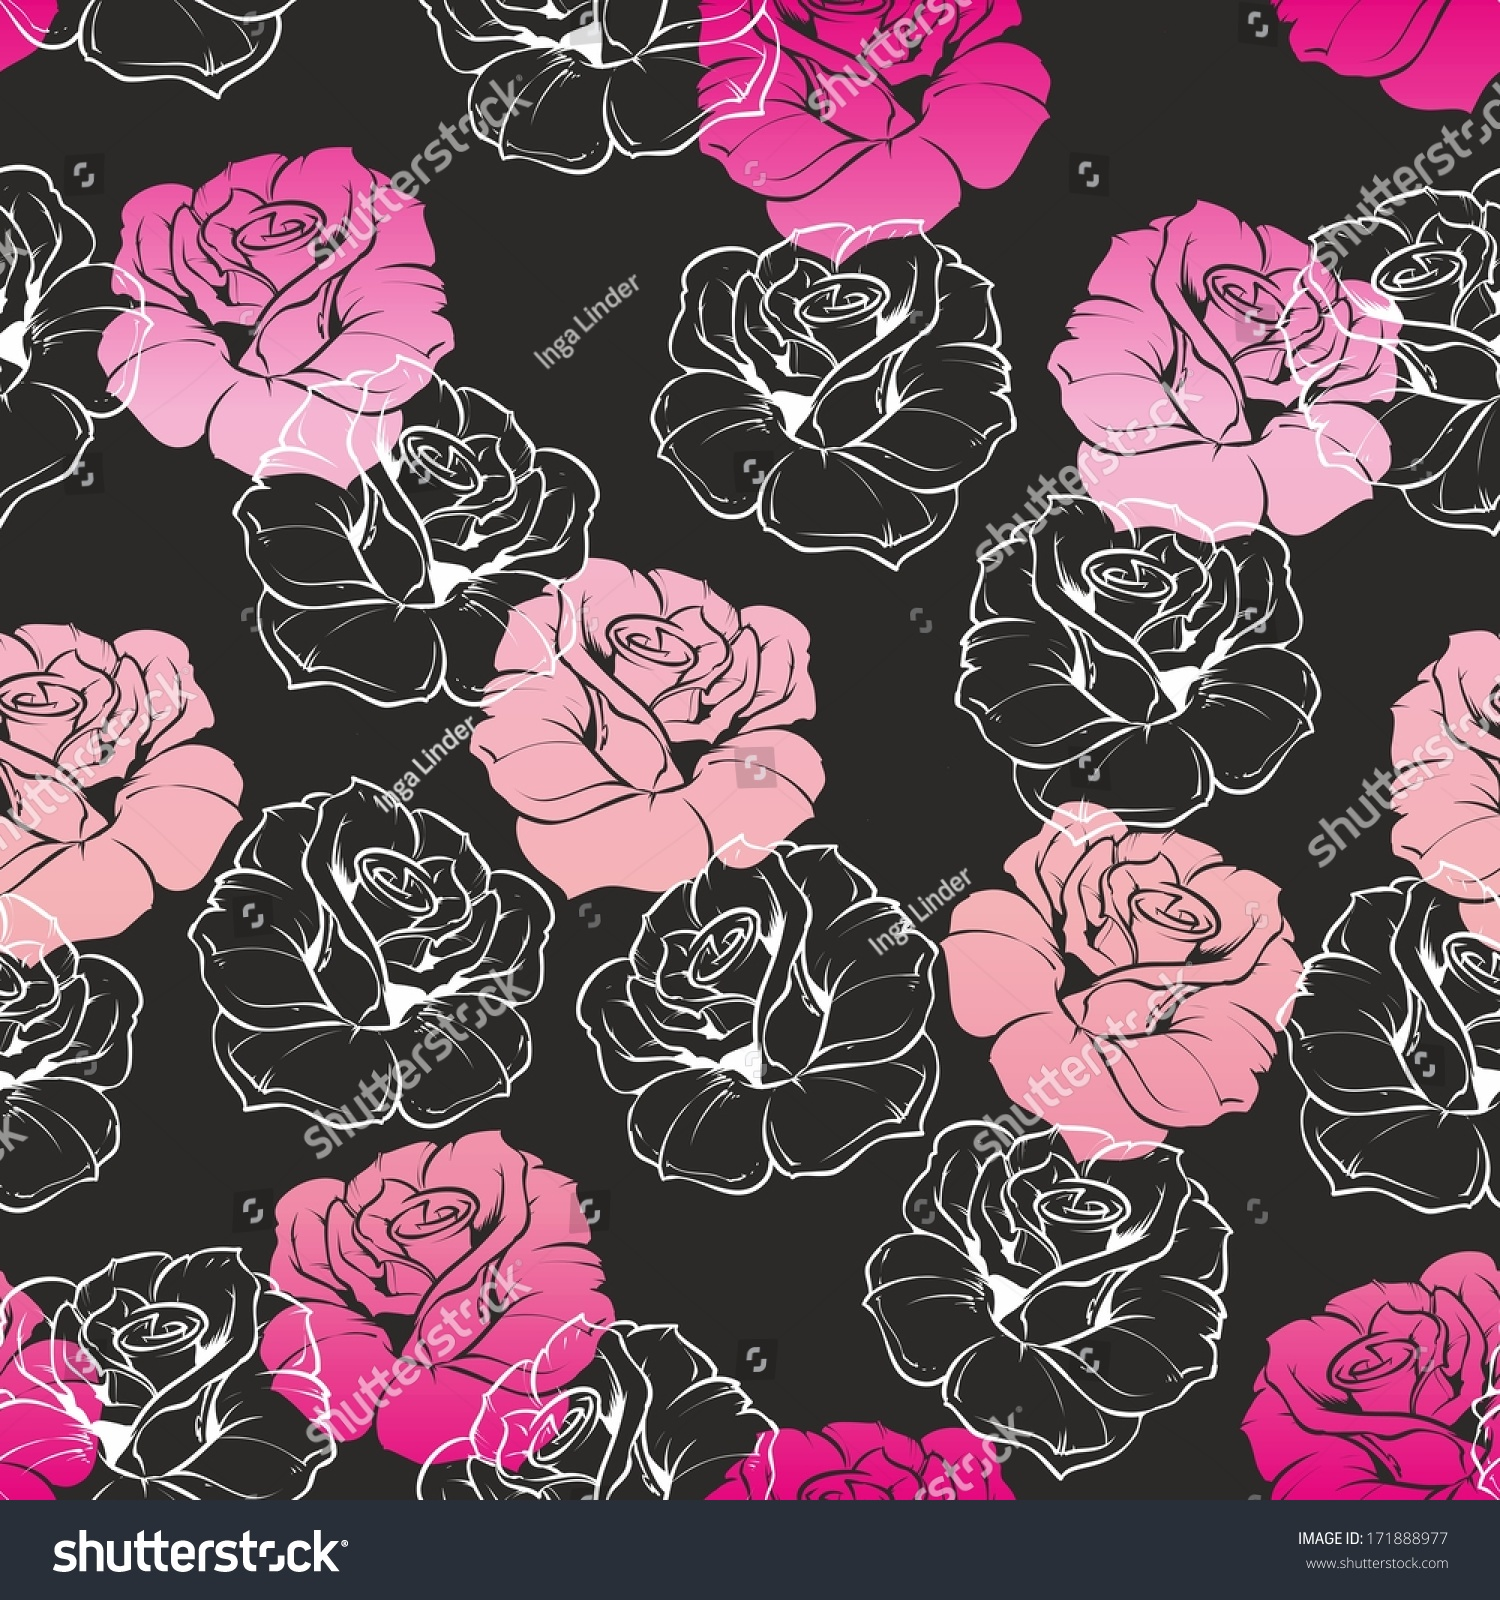 Seamless Dark Floral Pattern Pink White Stock Illustration 171888977